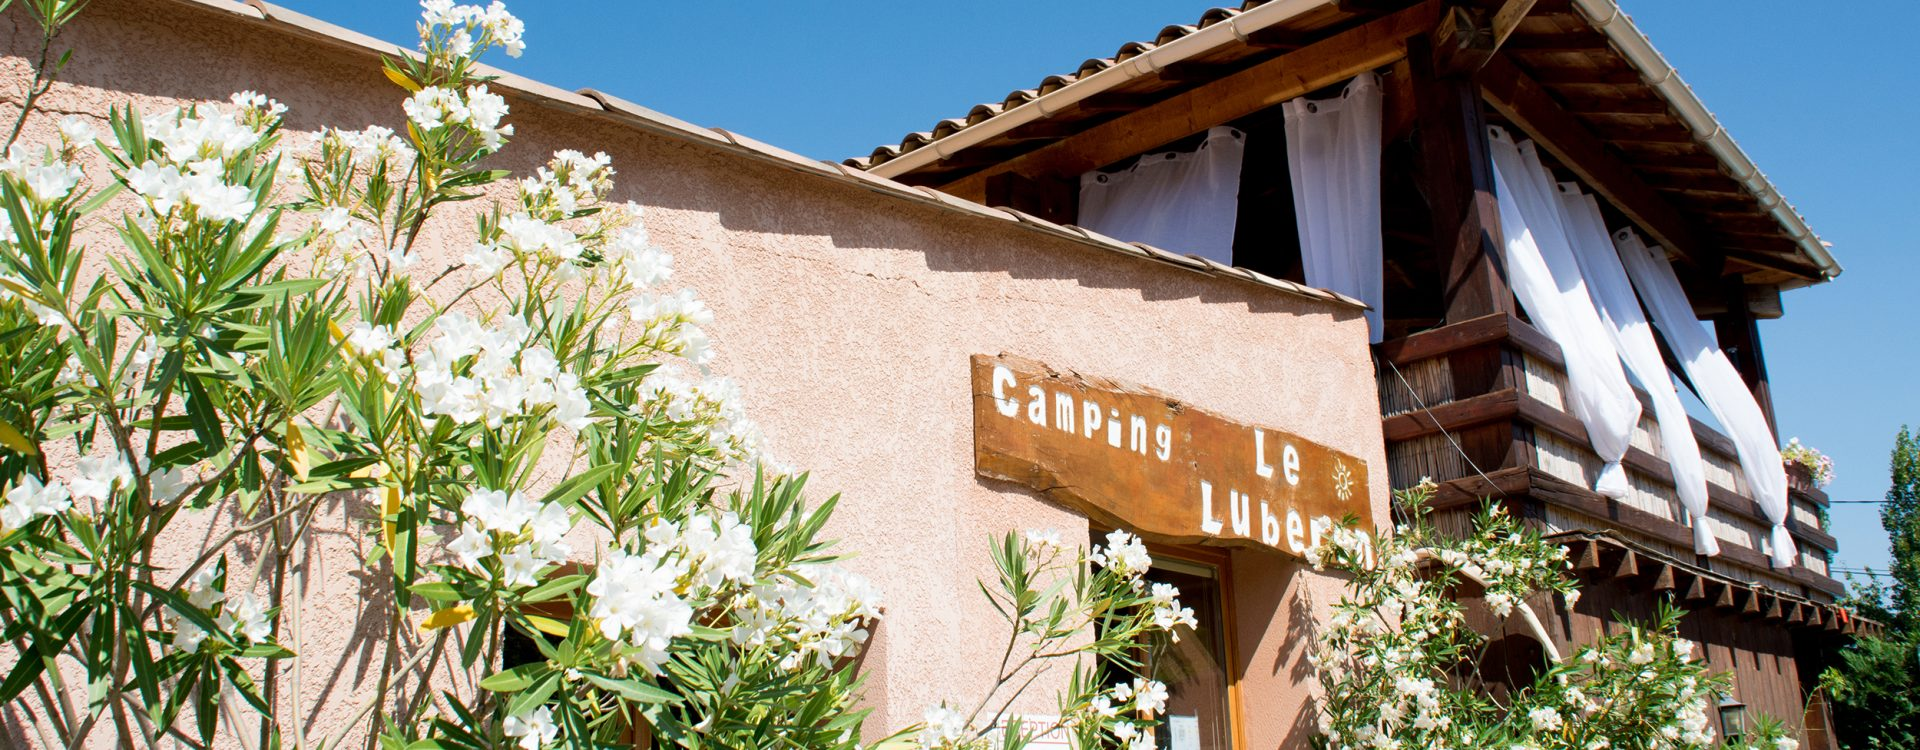 Accueil Camping Le Luberon